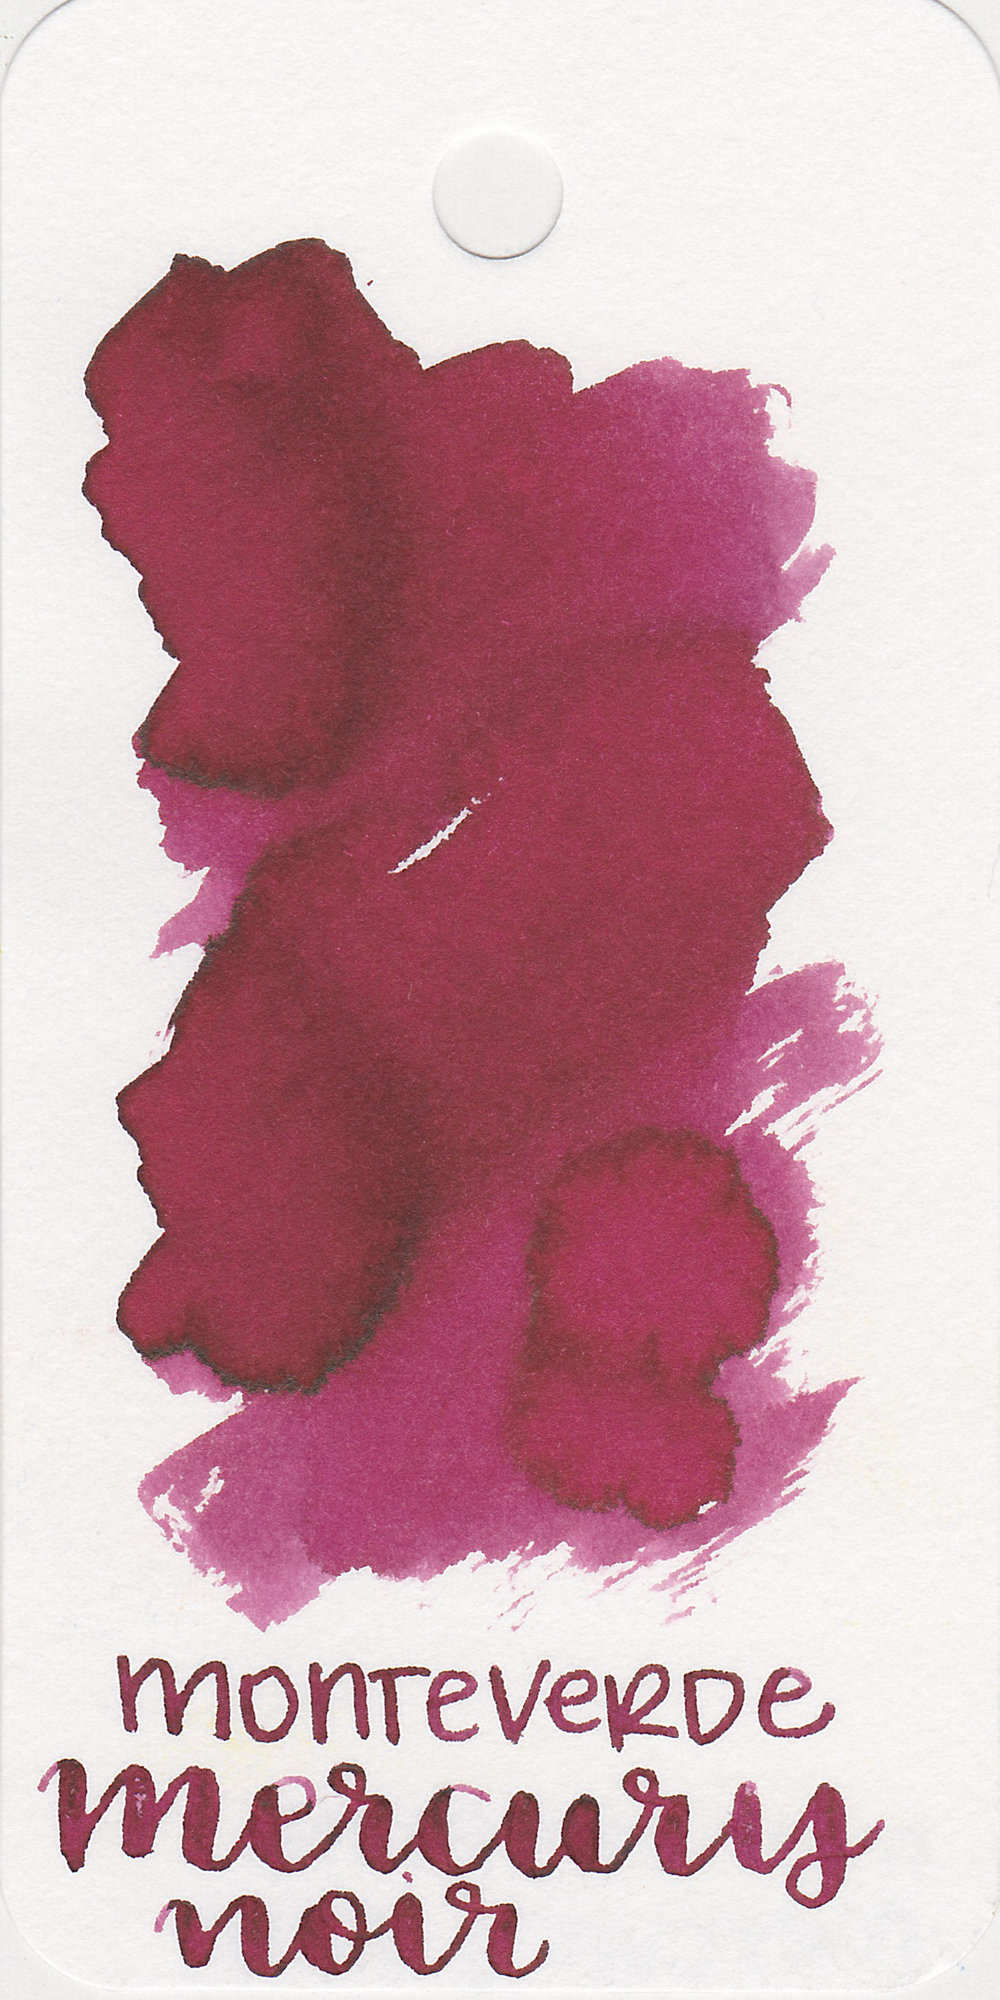 The color: - Mercury Noir is a dusky red, on some papers it almost looks dark pink.